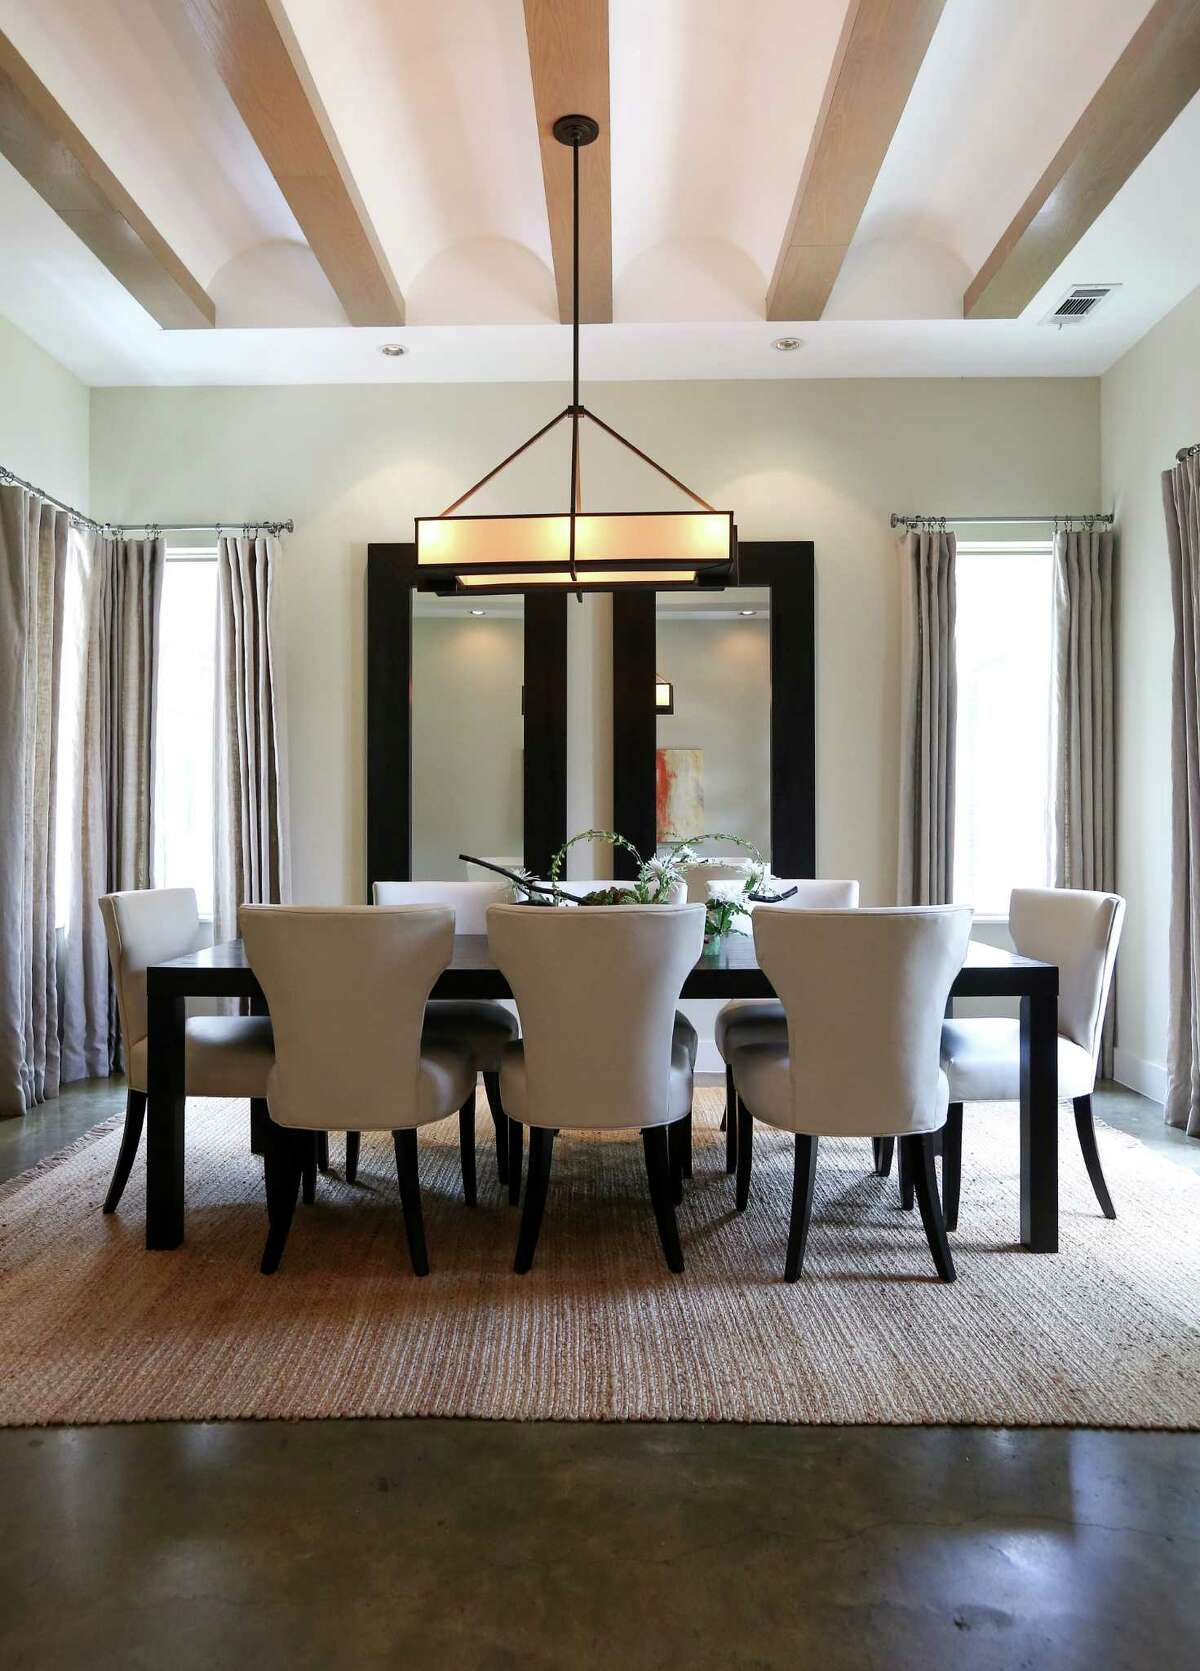 The Leggetts' dining room has a welcoming, contemporary feel.